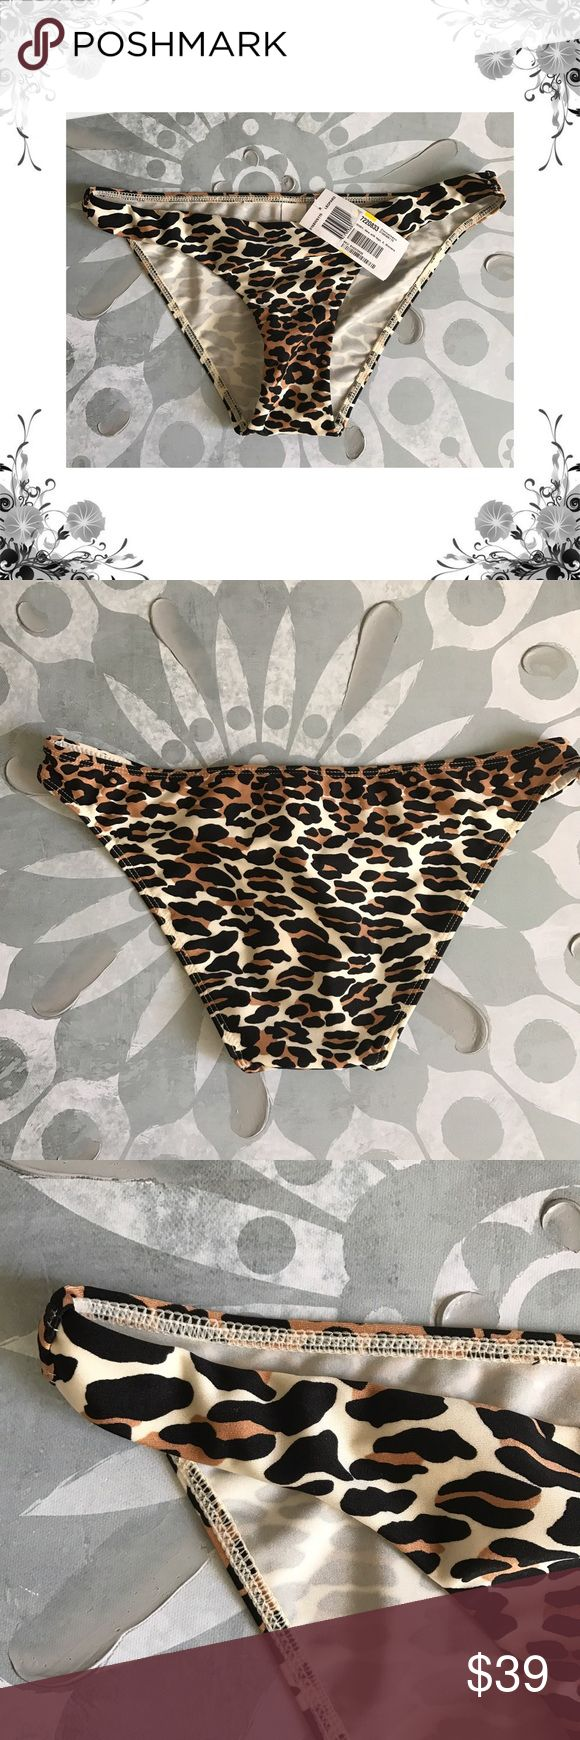 Zimmermann Animal Print Bikini Bottom Bottom only. Manufacturer Color is Leopard. Material is 80% Polyester/20% Elastane. Low-rise hipster cut. Full seat coverage. Bundle for discounts! Thank you for shopping my closet! Zimmermann Swim Bikinis